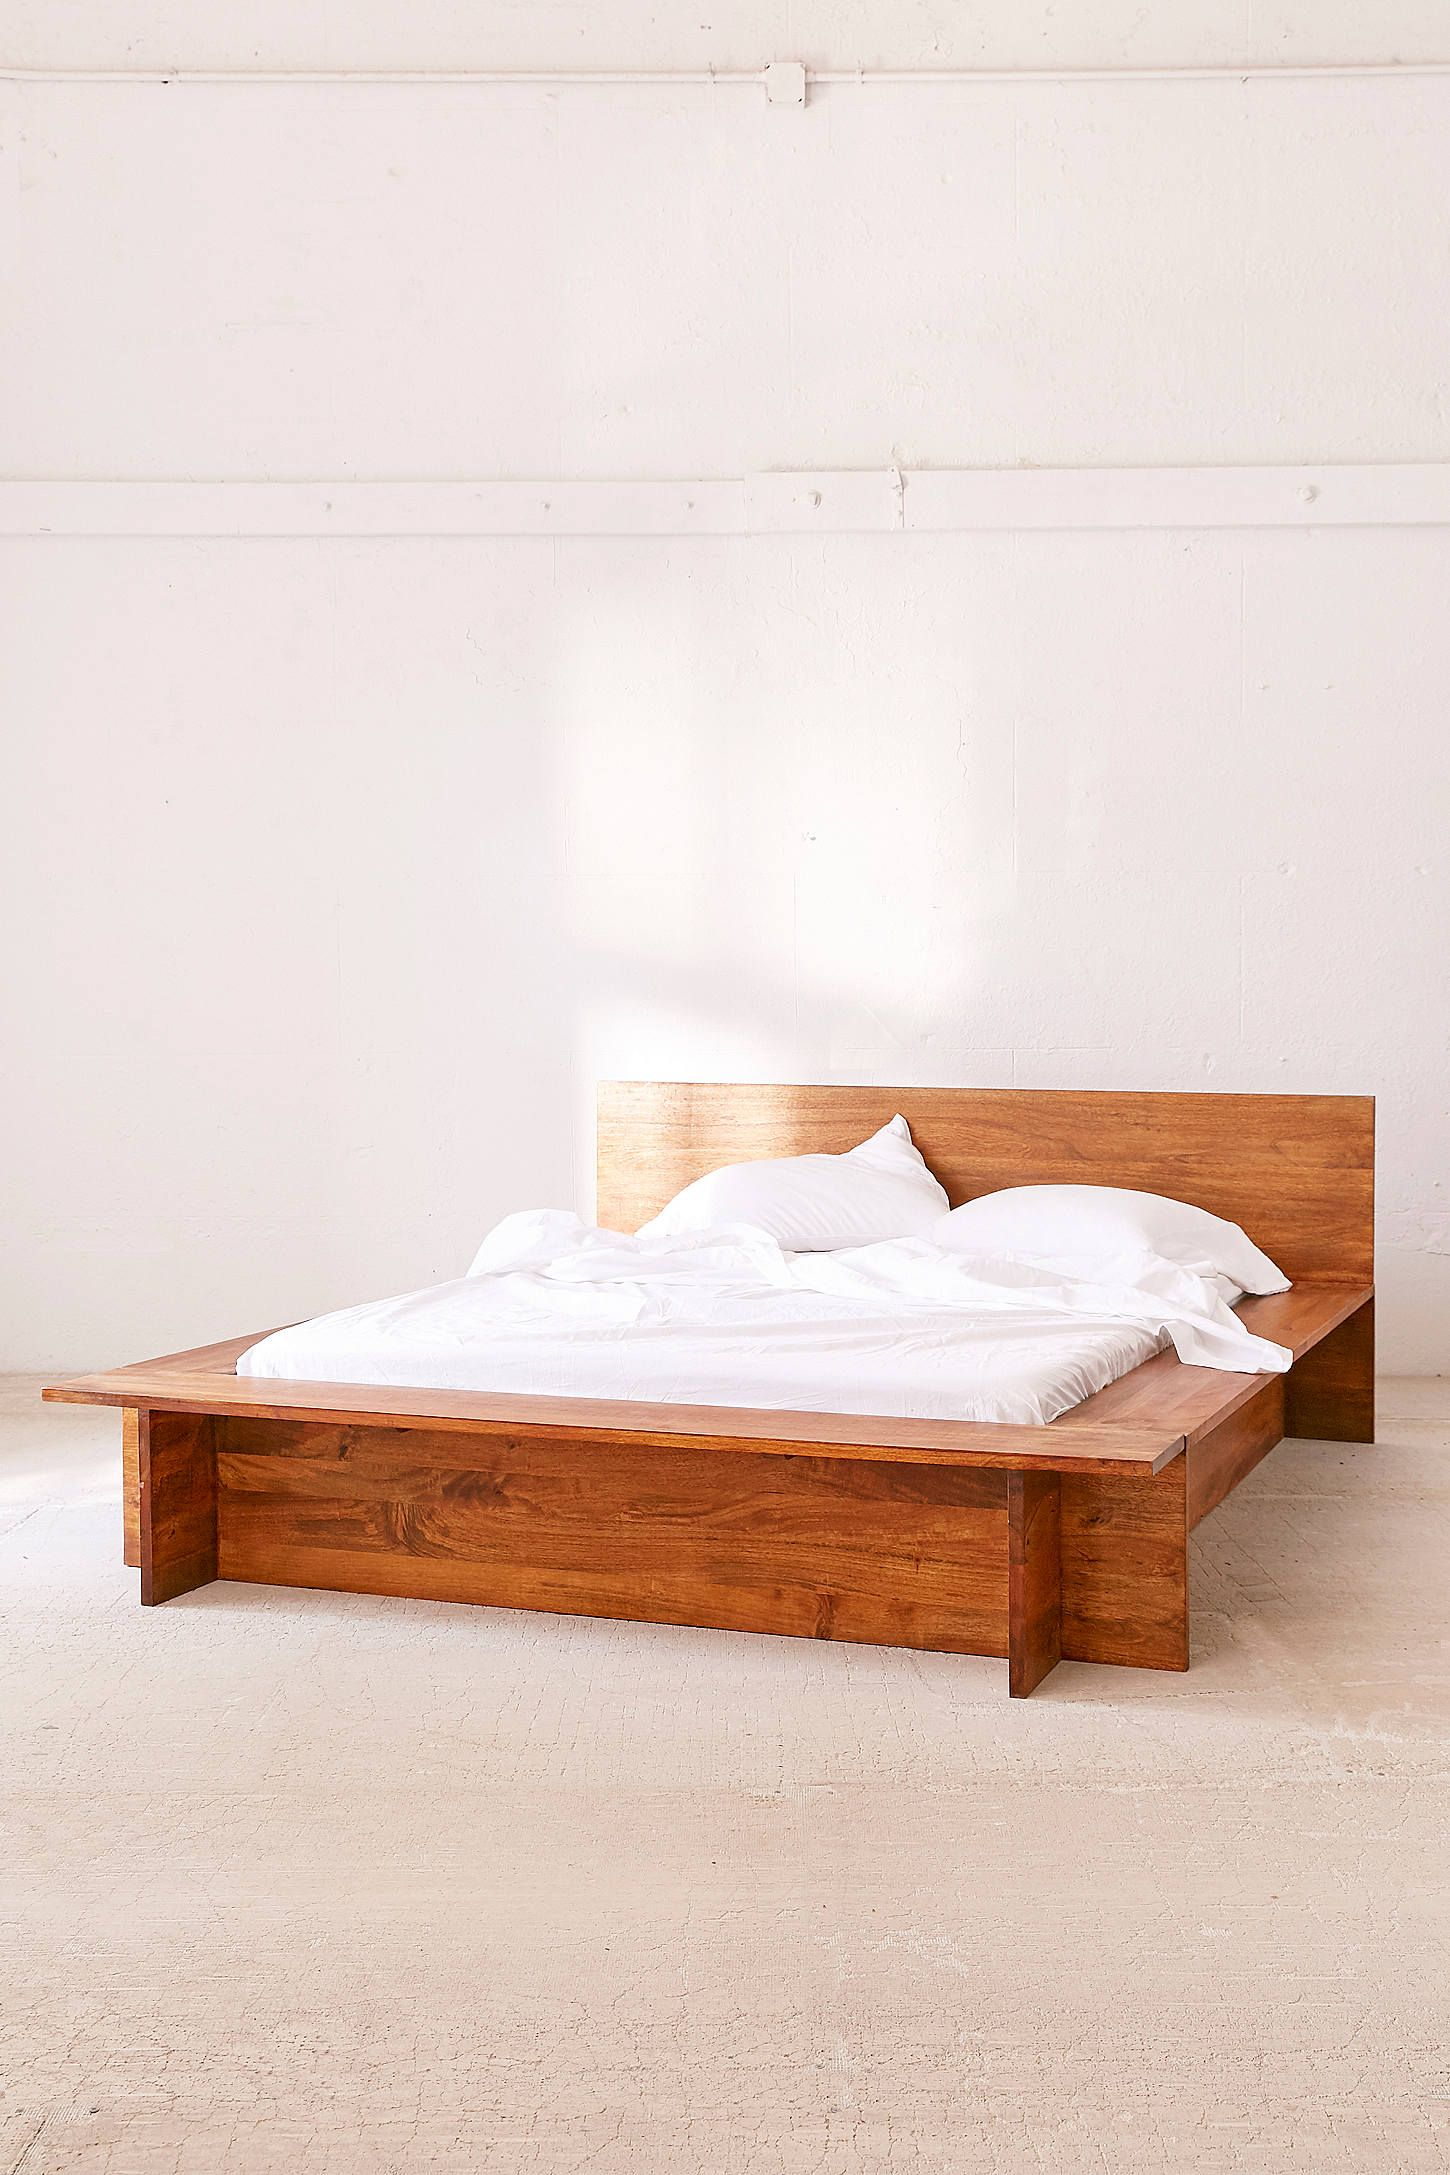 Modern Boho Media Stand | Boho bed frame, Platform bed ... on Modern Boho Bed Frame  id=25096